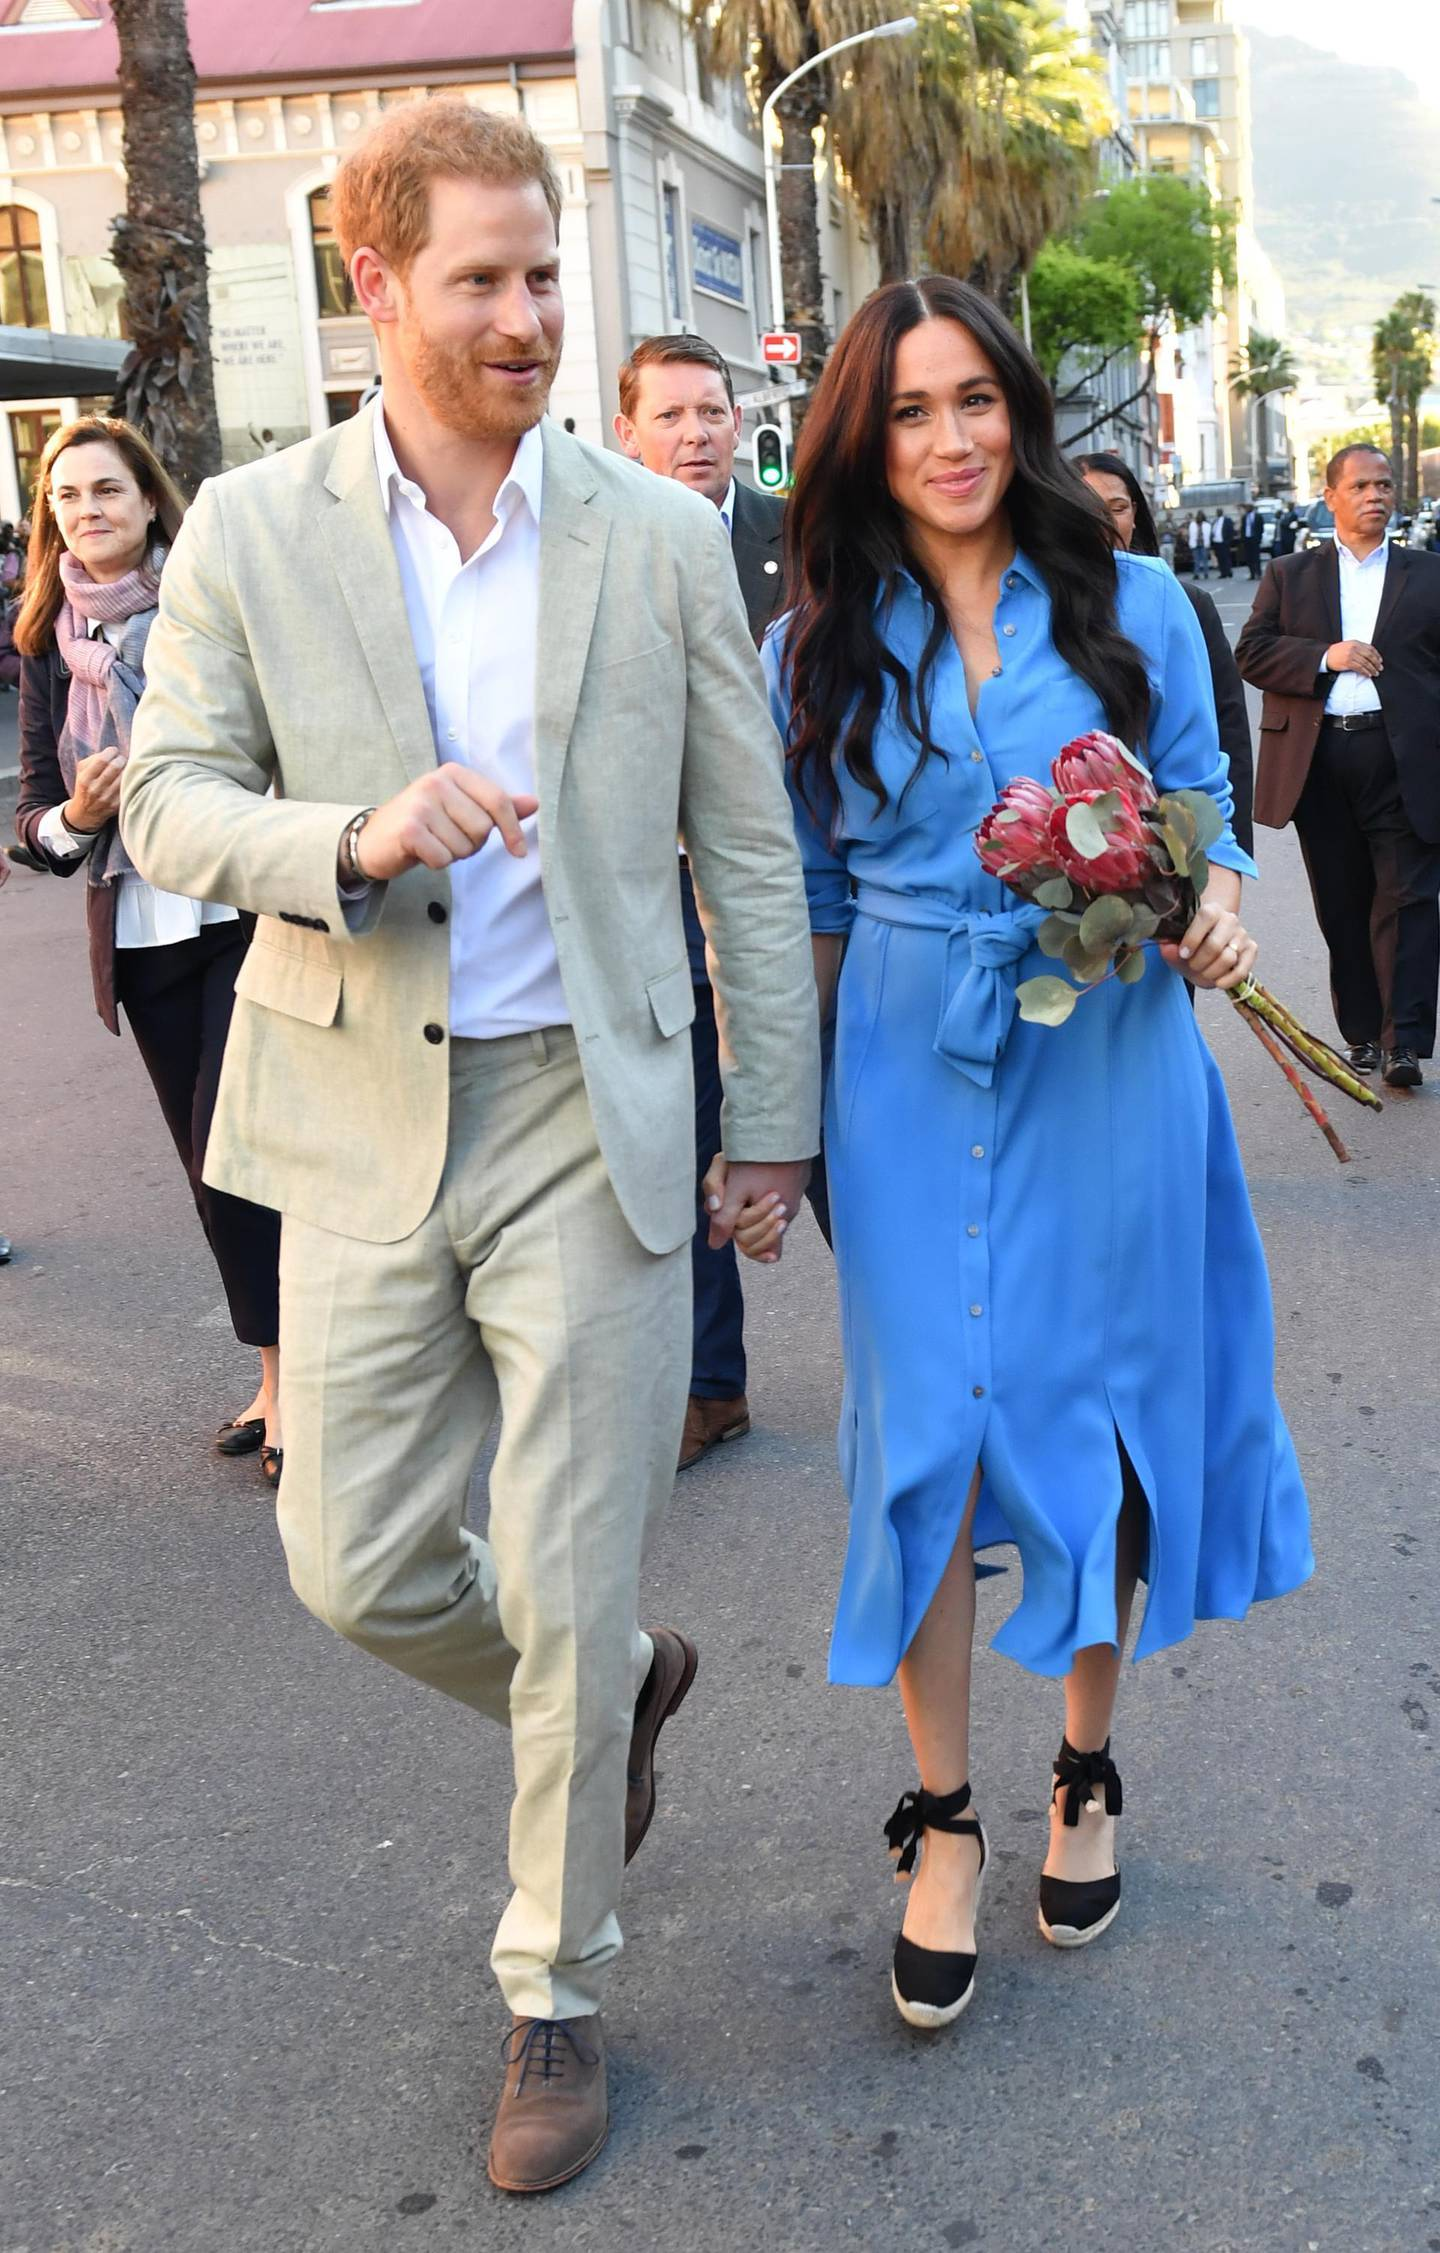 CAPE TOWN, SOUTH AFRICA - SEPTEMBER 23: Meghan, Duchess of Sussex and Prince Harry, Duke of Sussex visit District 6 Museum on September 23, 2019 in Cape Town, South Africa. District 6 is a former inner-city residential area in Cape Town, where freed slaves, artisans, immigrants, merchants and the Cape Malay community lived. For over a hundred years, different communities and races lived side by side, and the District became known for its vibrant culture, music and food. In 1966, the government declared District 6 a whites-only area, and over 60,000 residents were forcibly removed and relocated to the Cape Flats Township. (Photo by Mark Large - Pool/Getty Images)